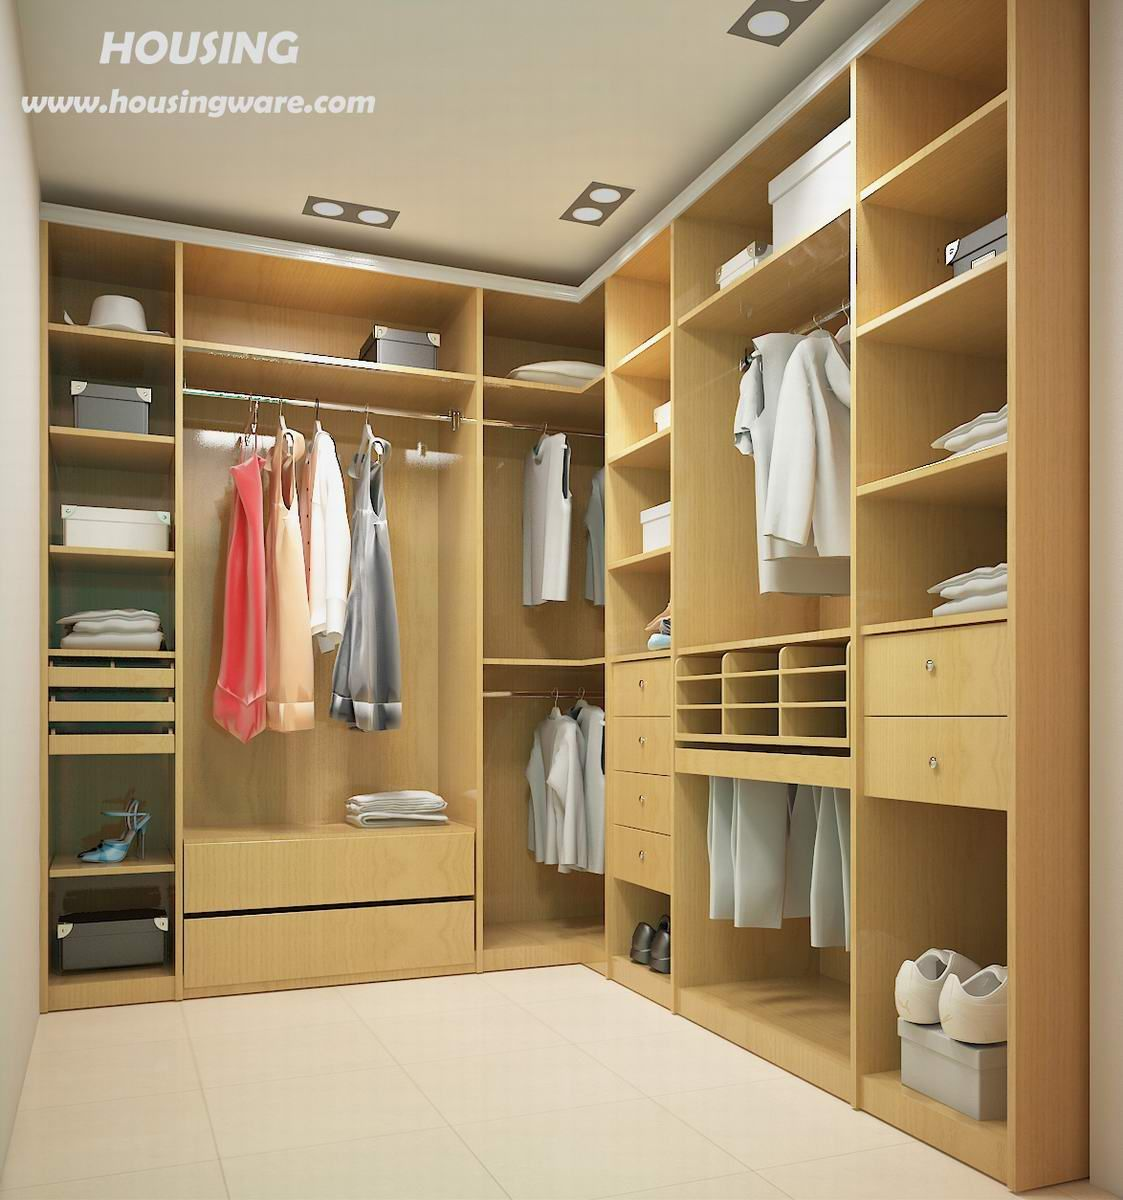 Walk In Closet Images walk-in-closet 5 | house design ideas | pinterest | closet layout